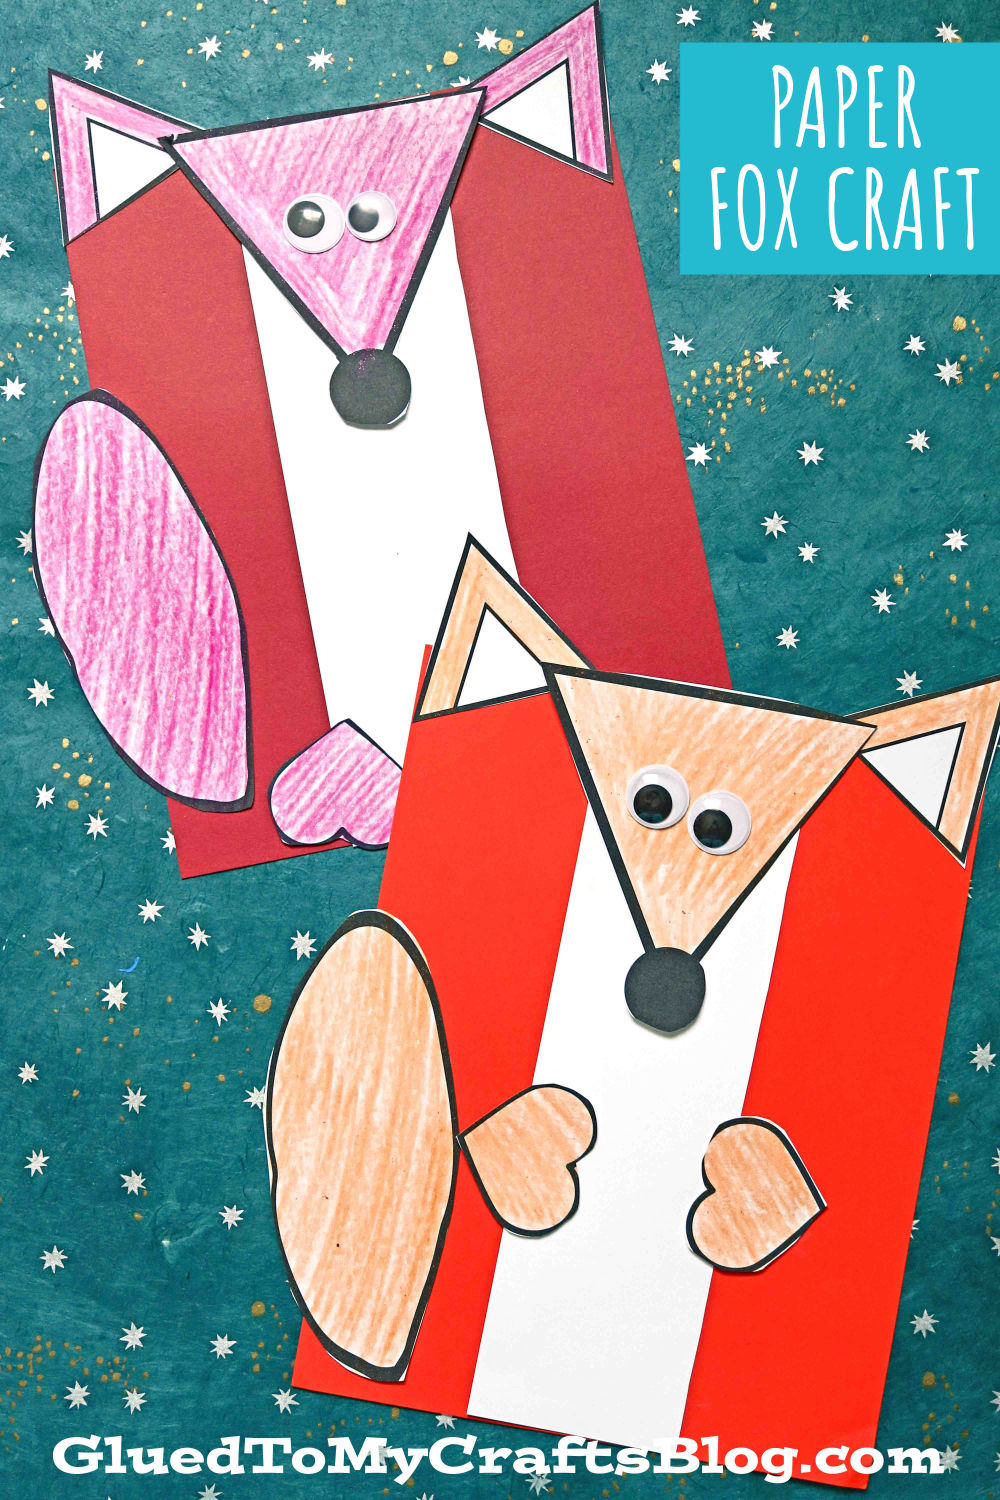 Easy Paper Fox Craft Idea For Kids - Free Printable Included!